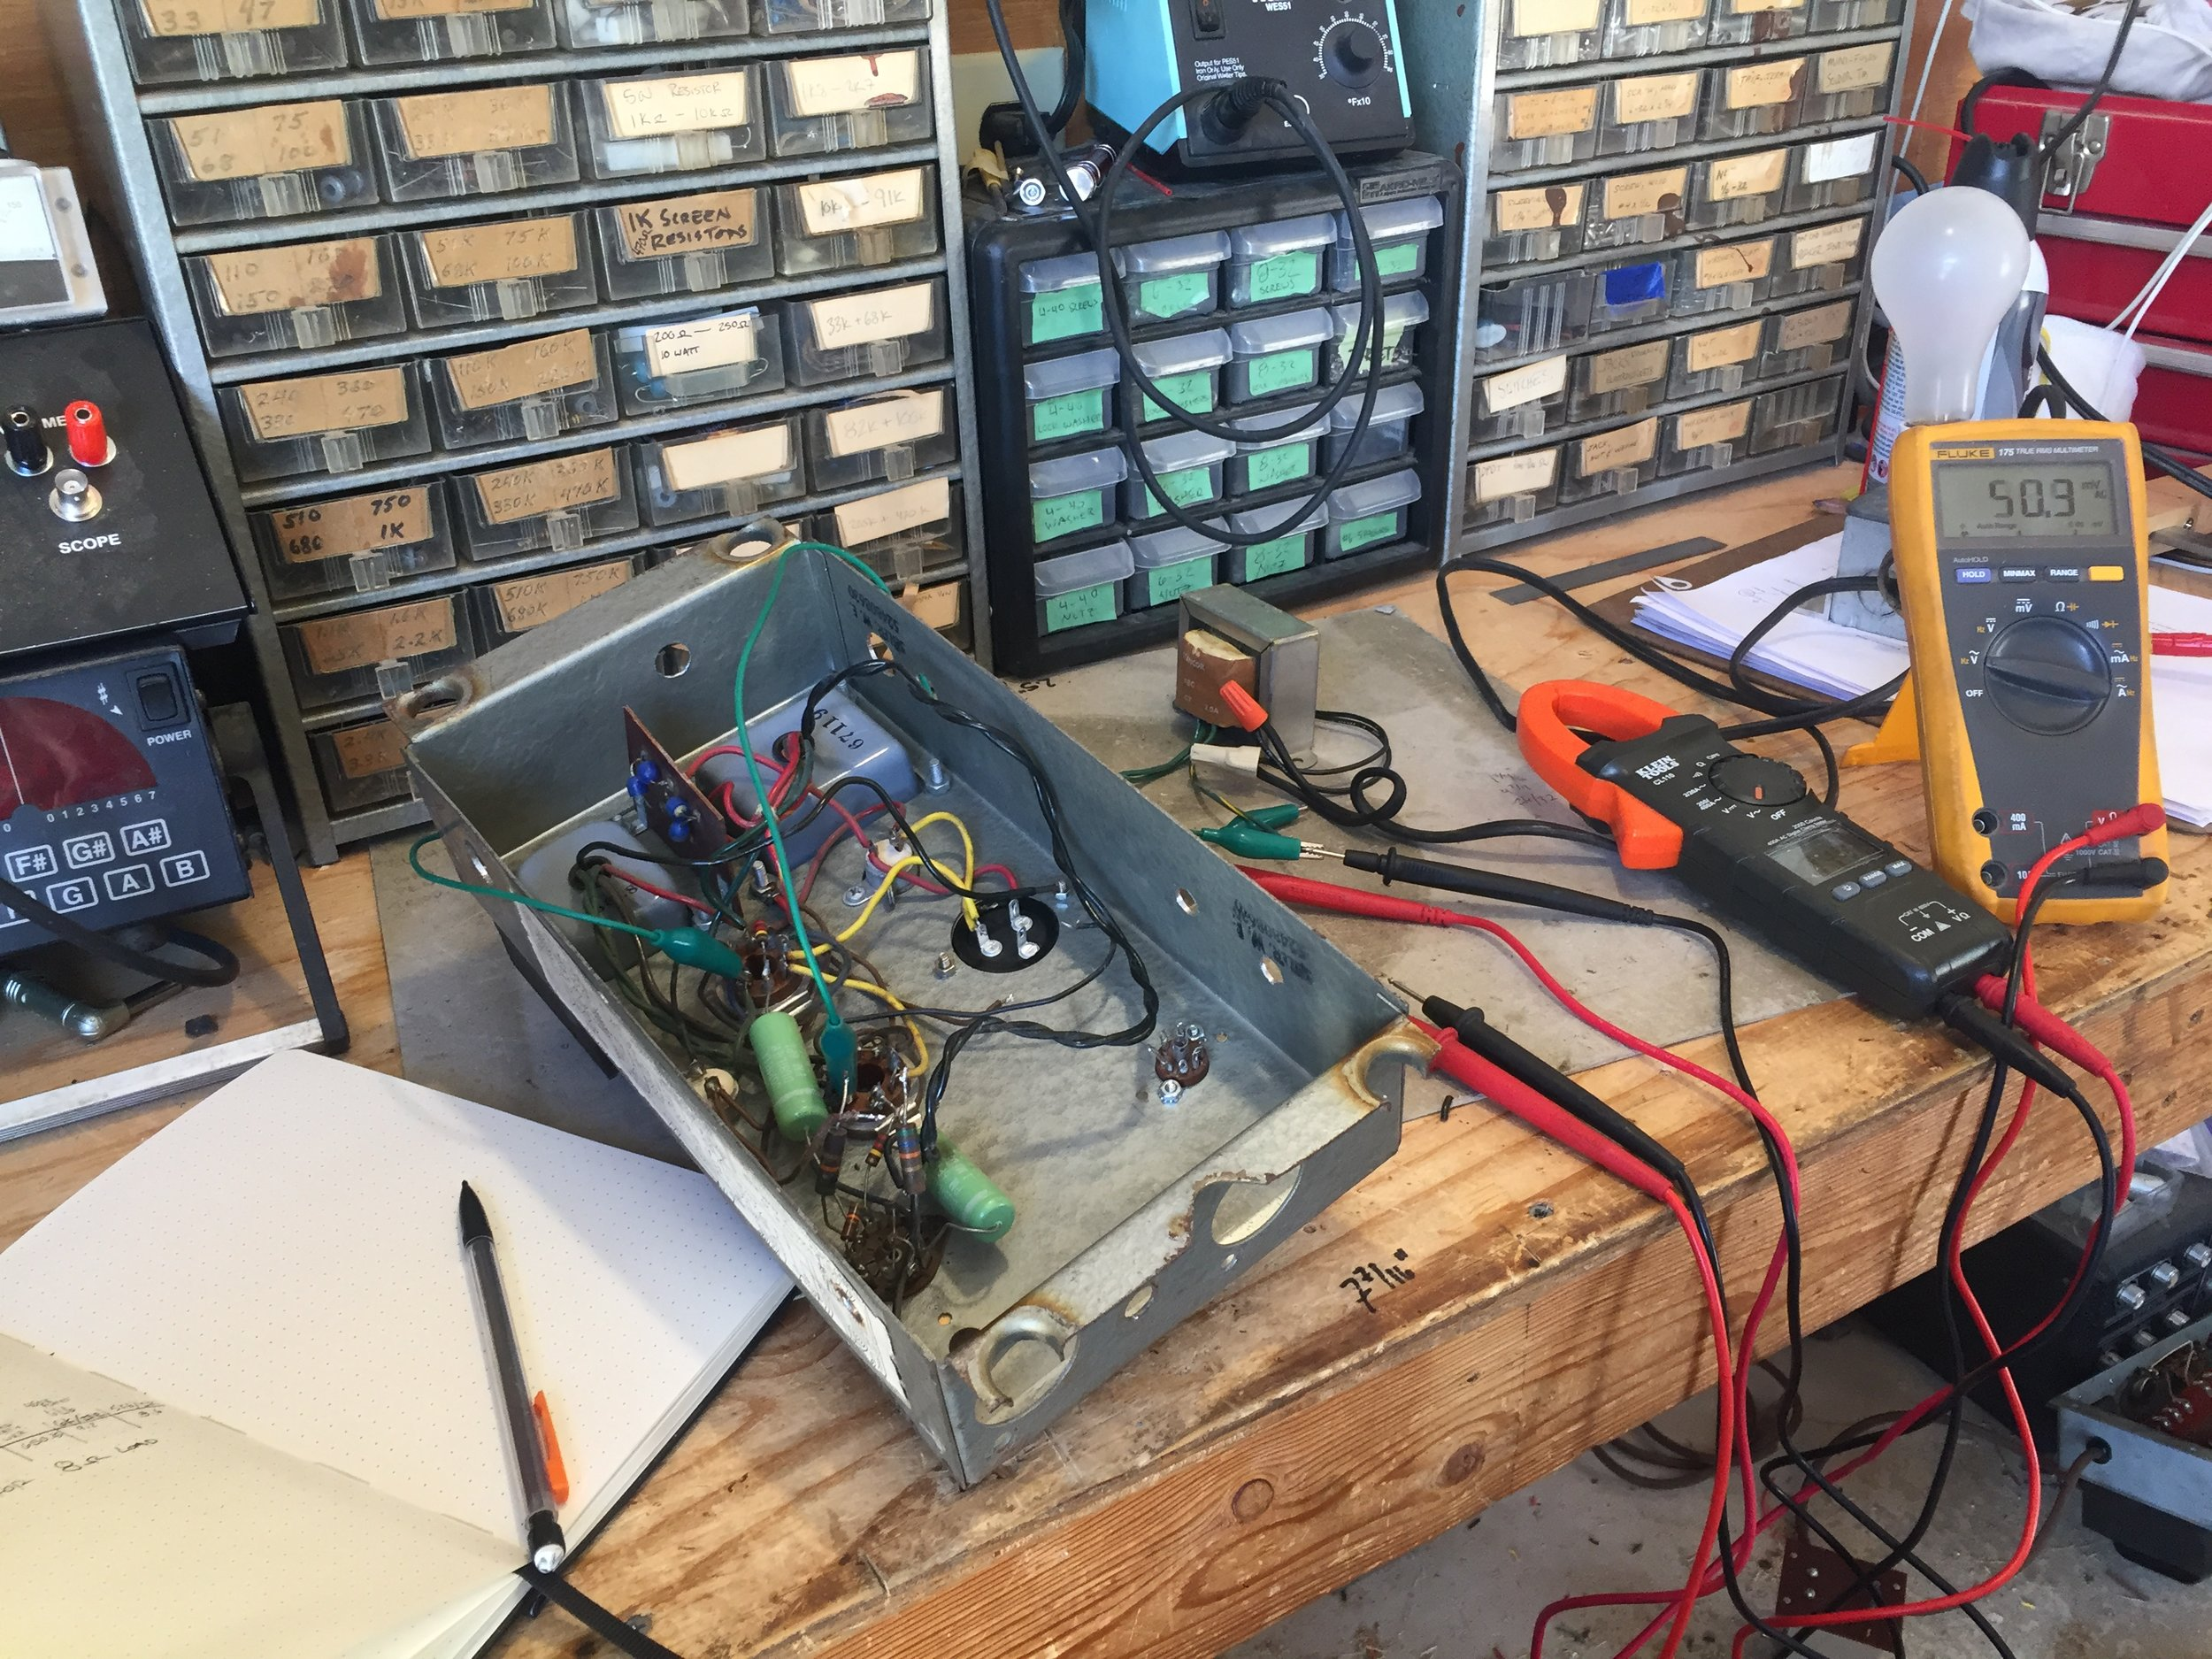 Measuring and computing the impedance ratio of the output transformer.